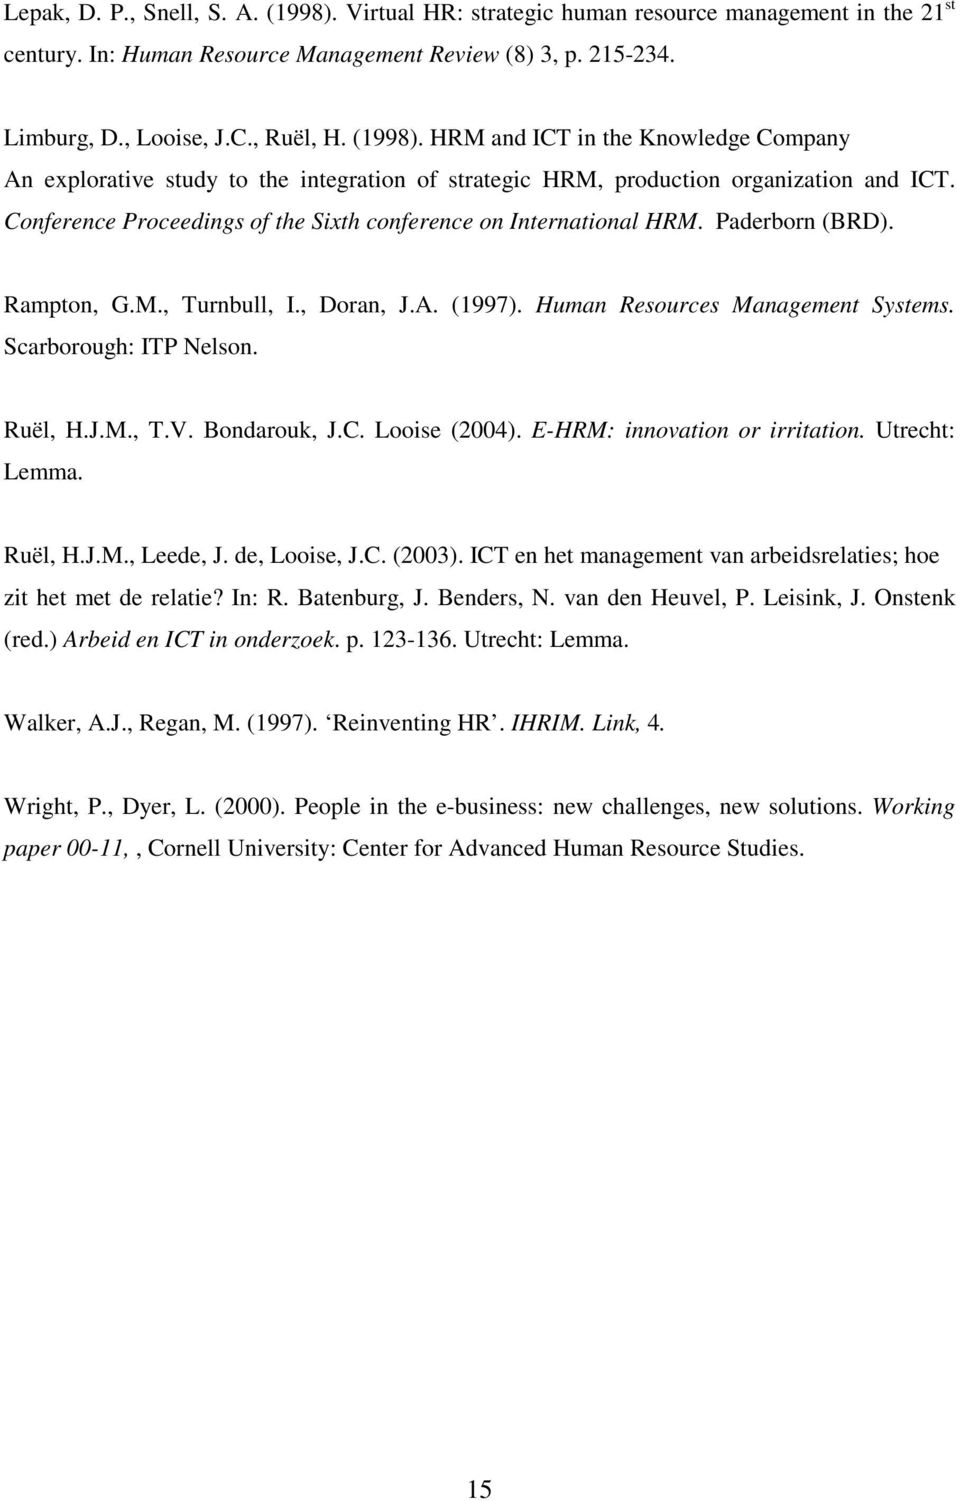 Conference Proceedings of the Sixth conference on International HRM. Paderborn (BRD). Rampton, G.M., Turnbull, I., Doran, J.A. (1997). Human Resources Management Systems. Scarborough: ITP Nelson.